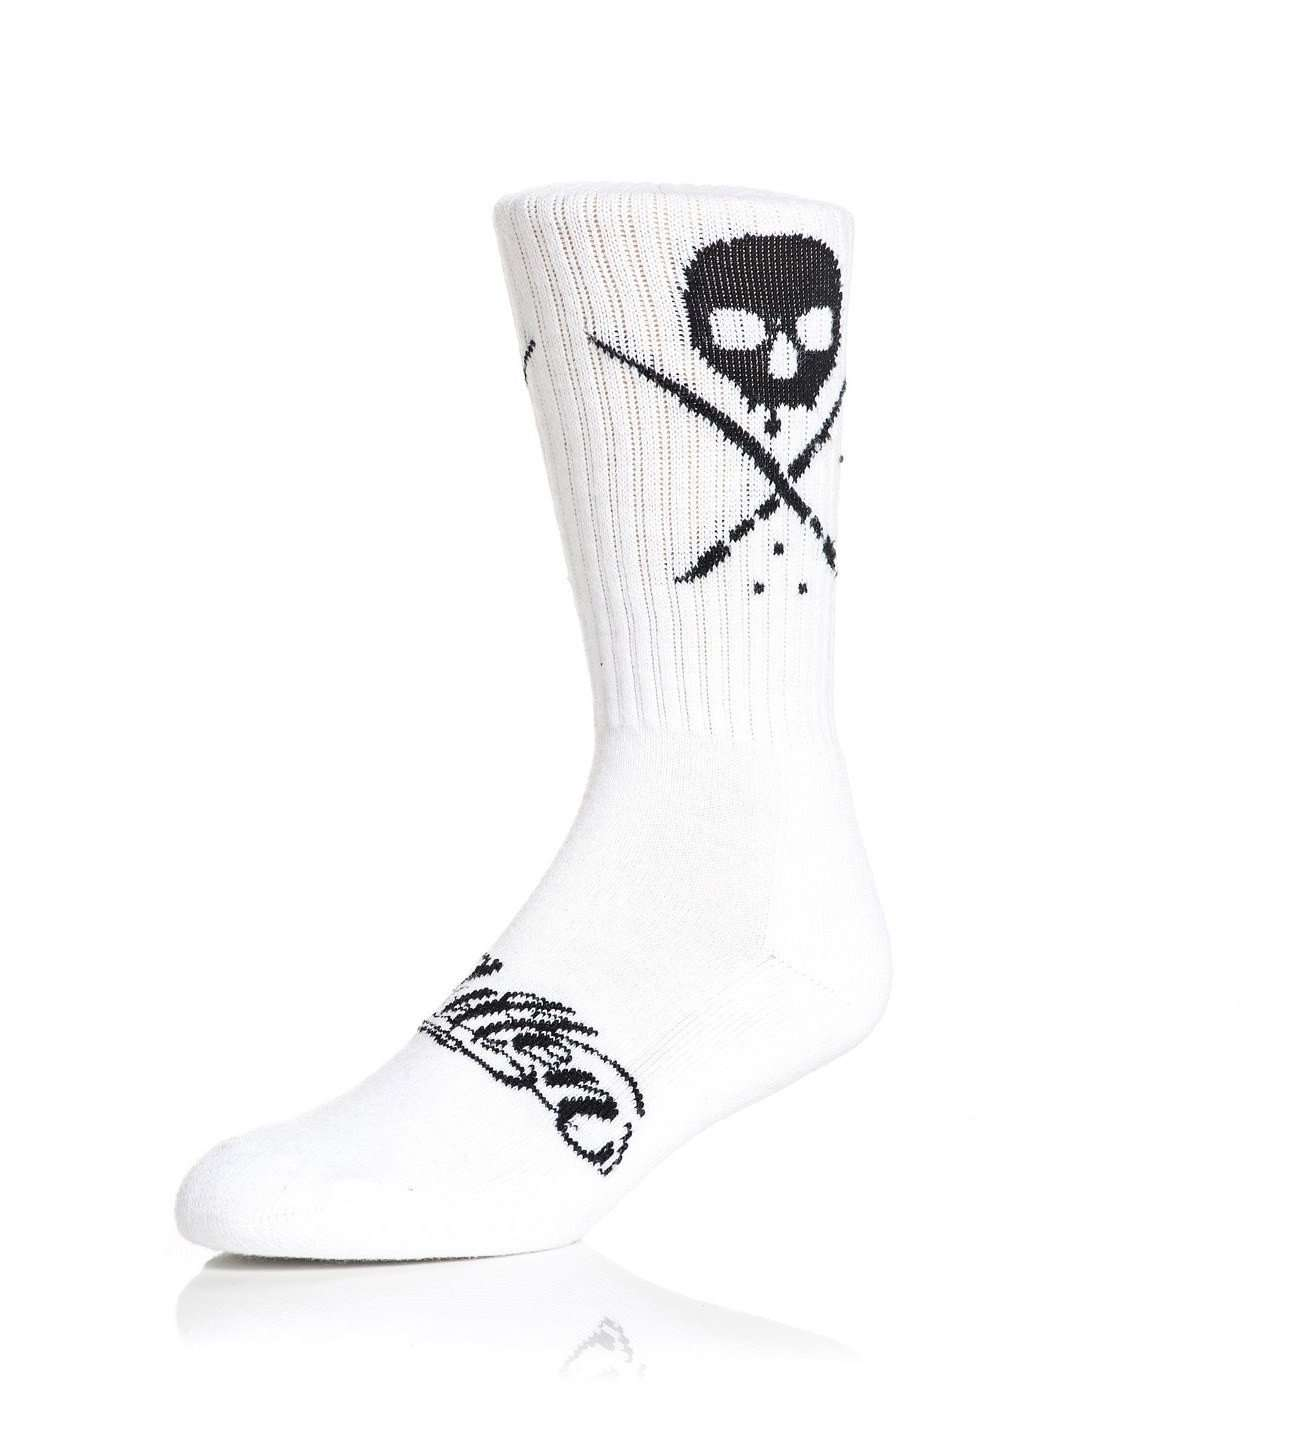 Standard Issue Socks White/Black - Sullen Art Co.